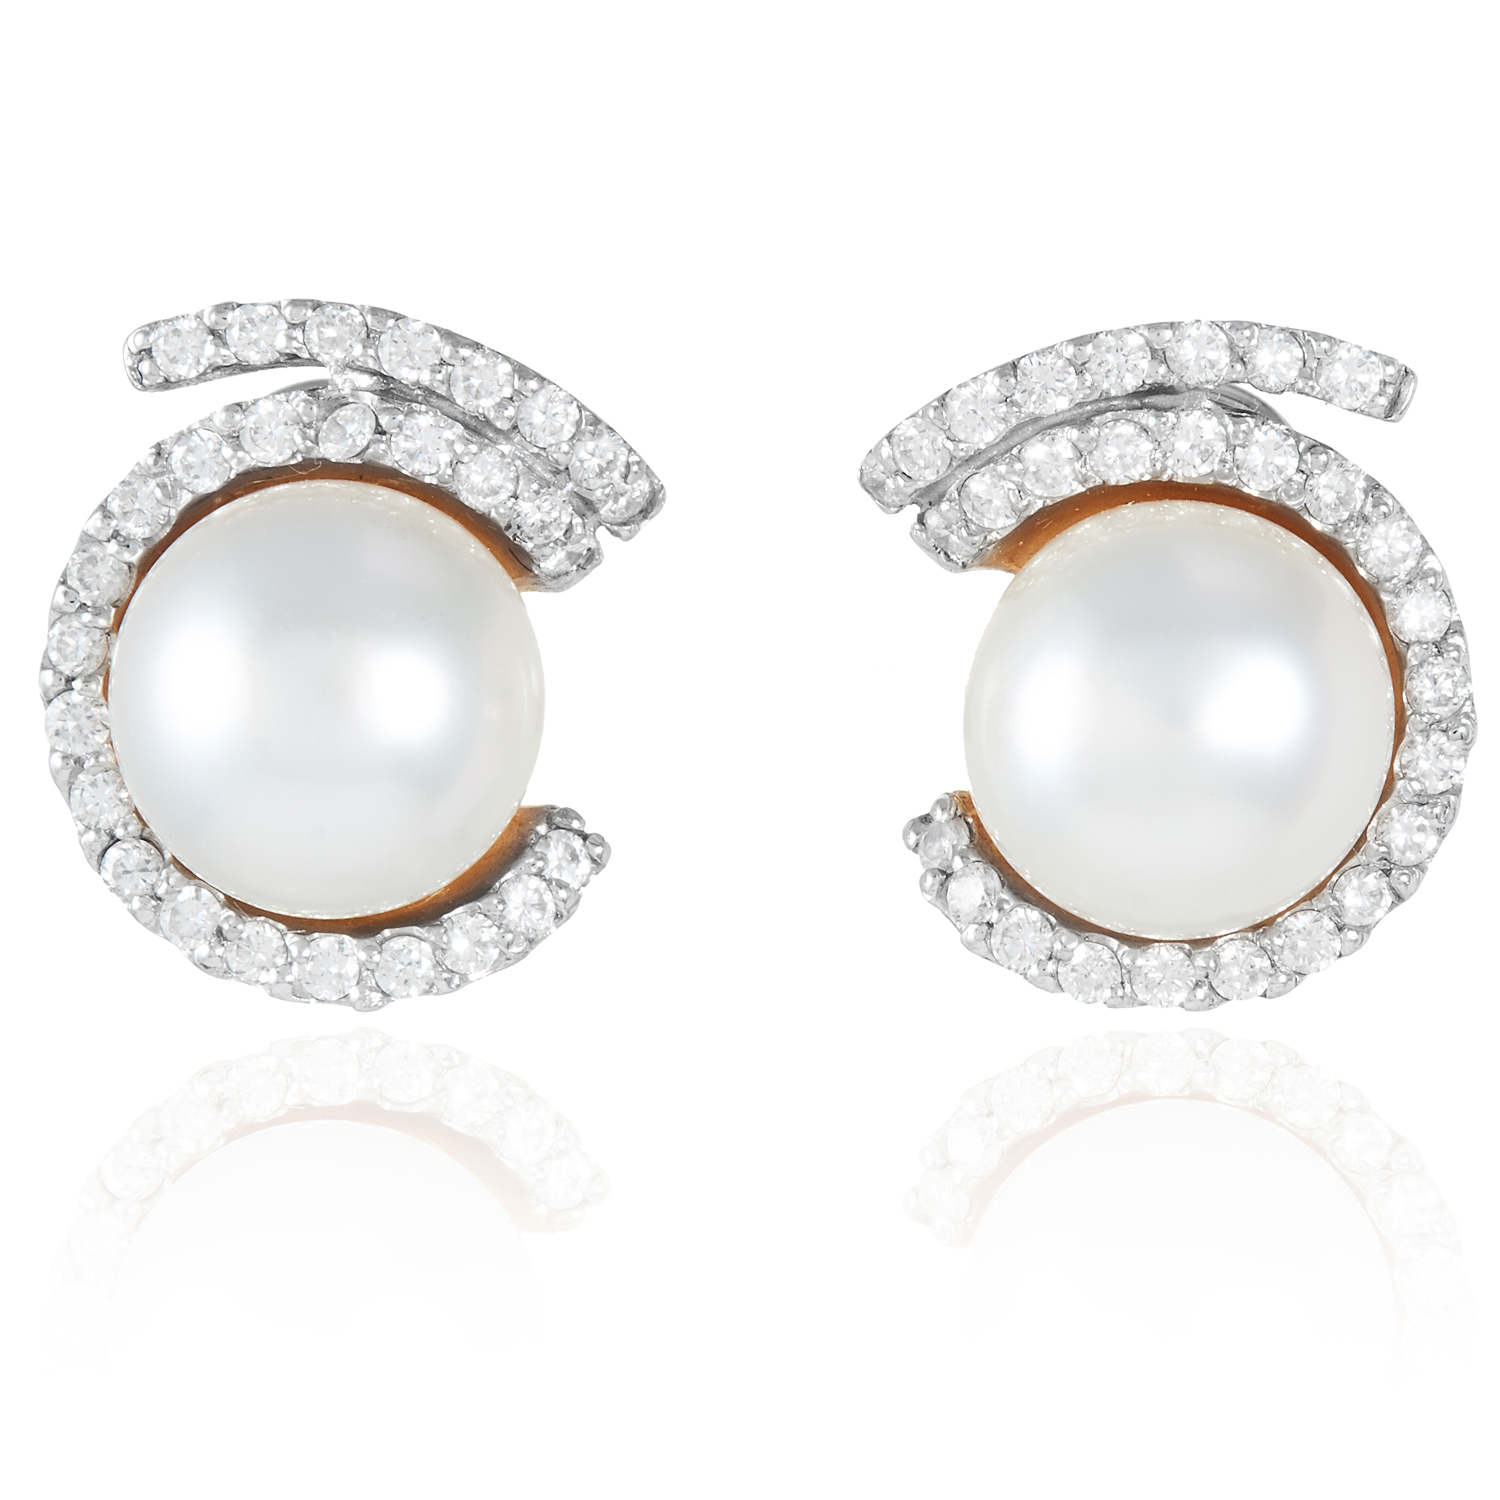 A PAIR OF PEARL AND DIAMOND EARRINGS in 18ct yellow gold, set with 11.3mm round pearls within